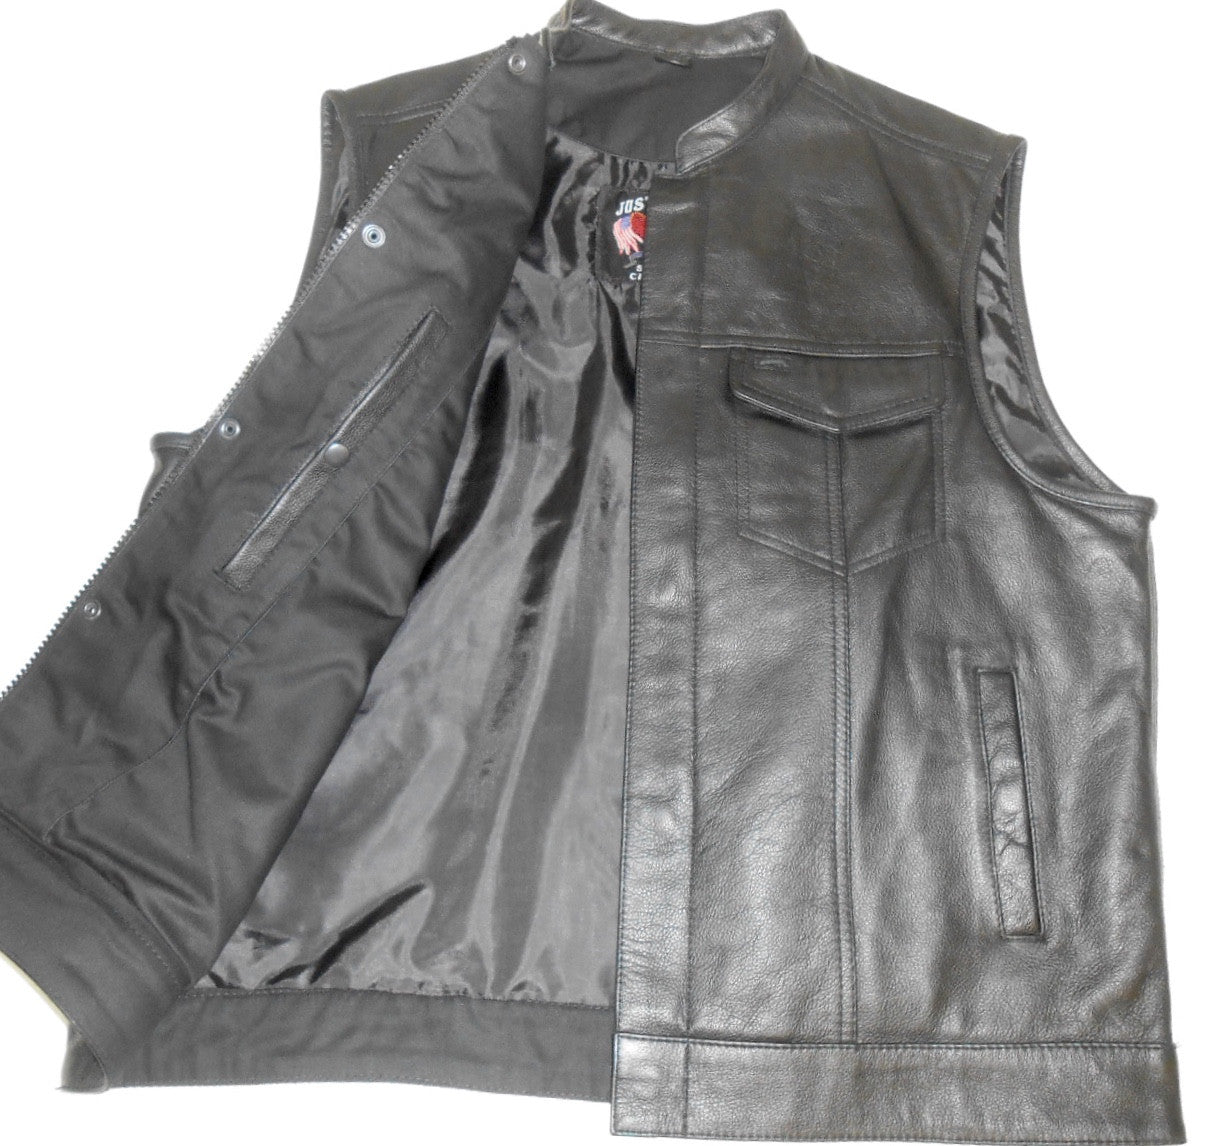 Men's Cut Off Vest Hidden Zipper and Snaps (Hand Pockets)